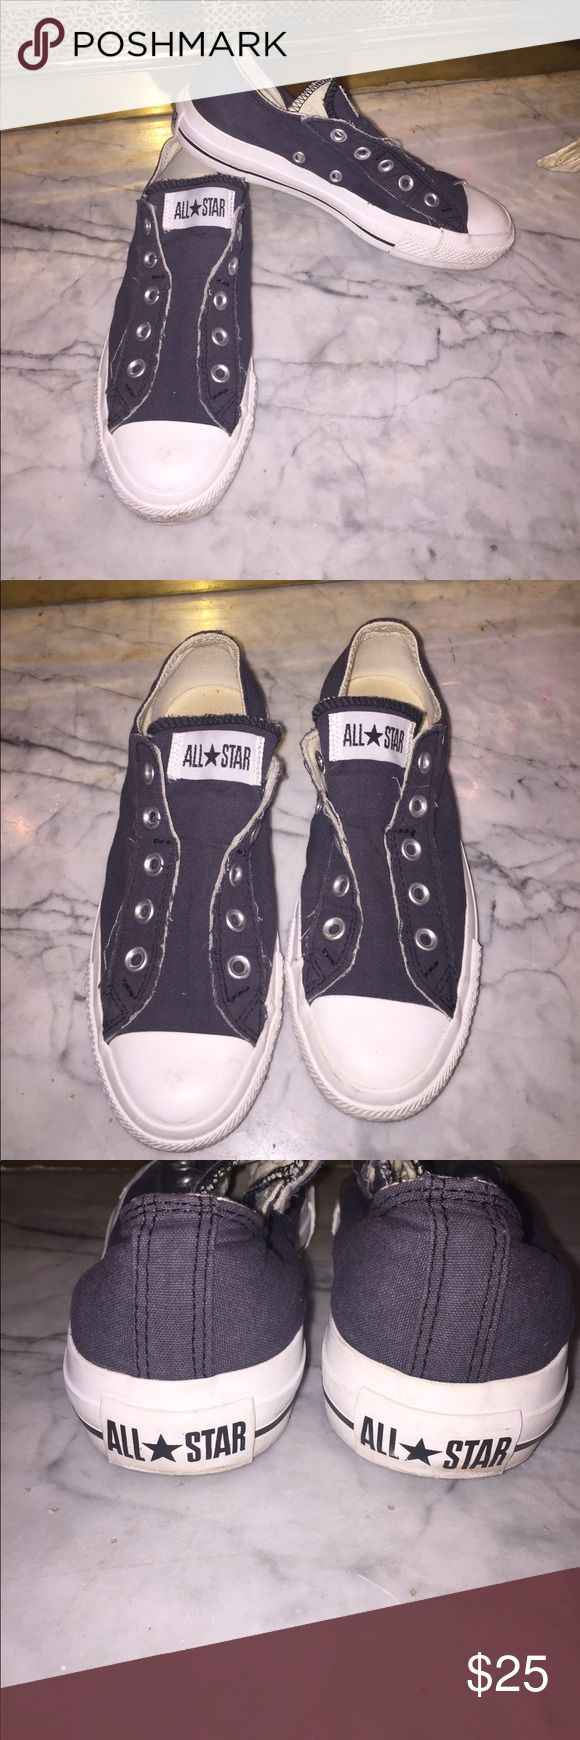 Converse Slip On Sneakers Great Condition!/Unisex!/ Navy Blue/ Women's size 6/ Men's size 4 Converse Shoes Sneakers